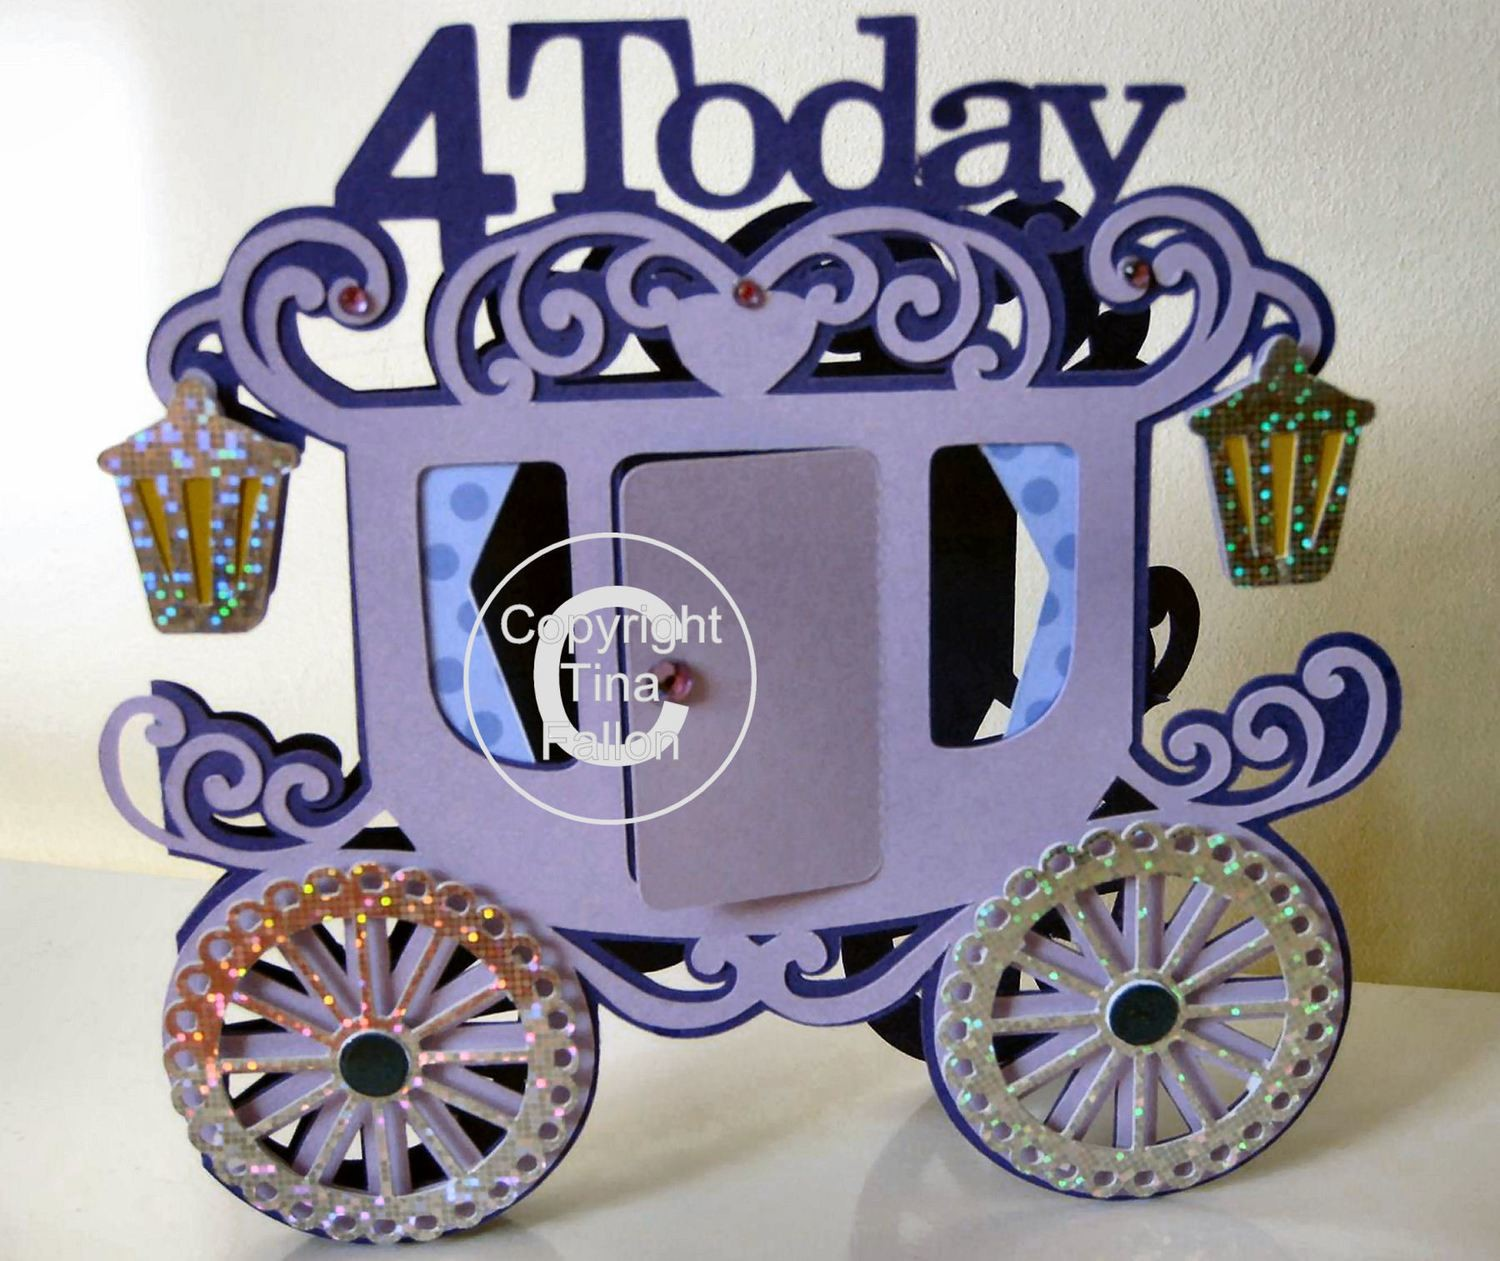 Princess Carriage 4 today Card Template